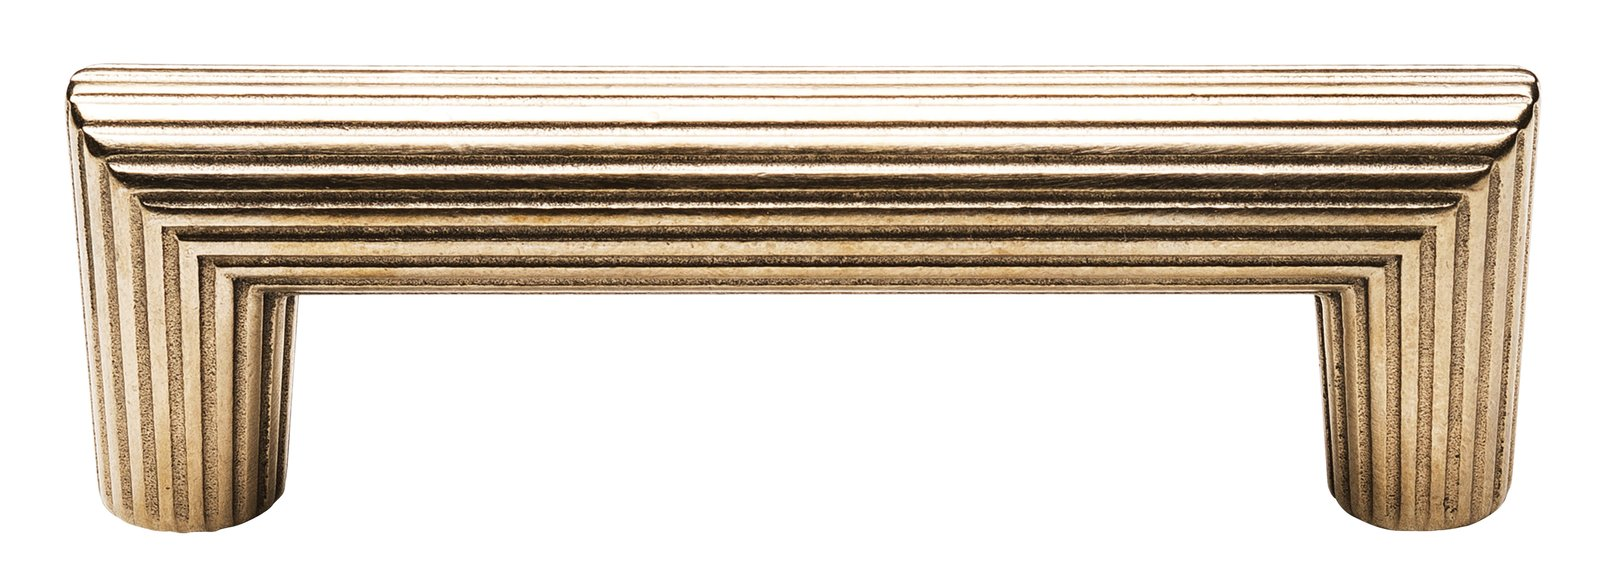 Cabinetry-Pull-Rocky-Mountain-Hardware